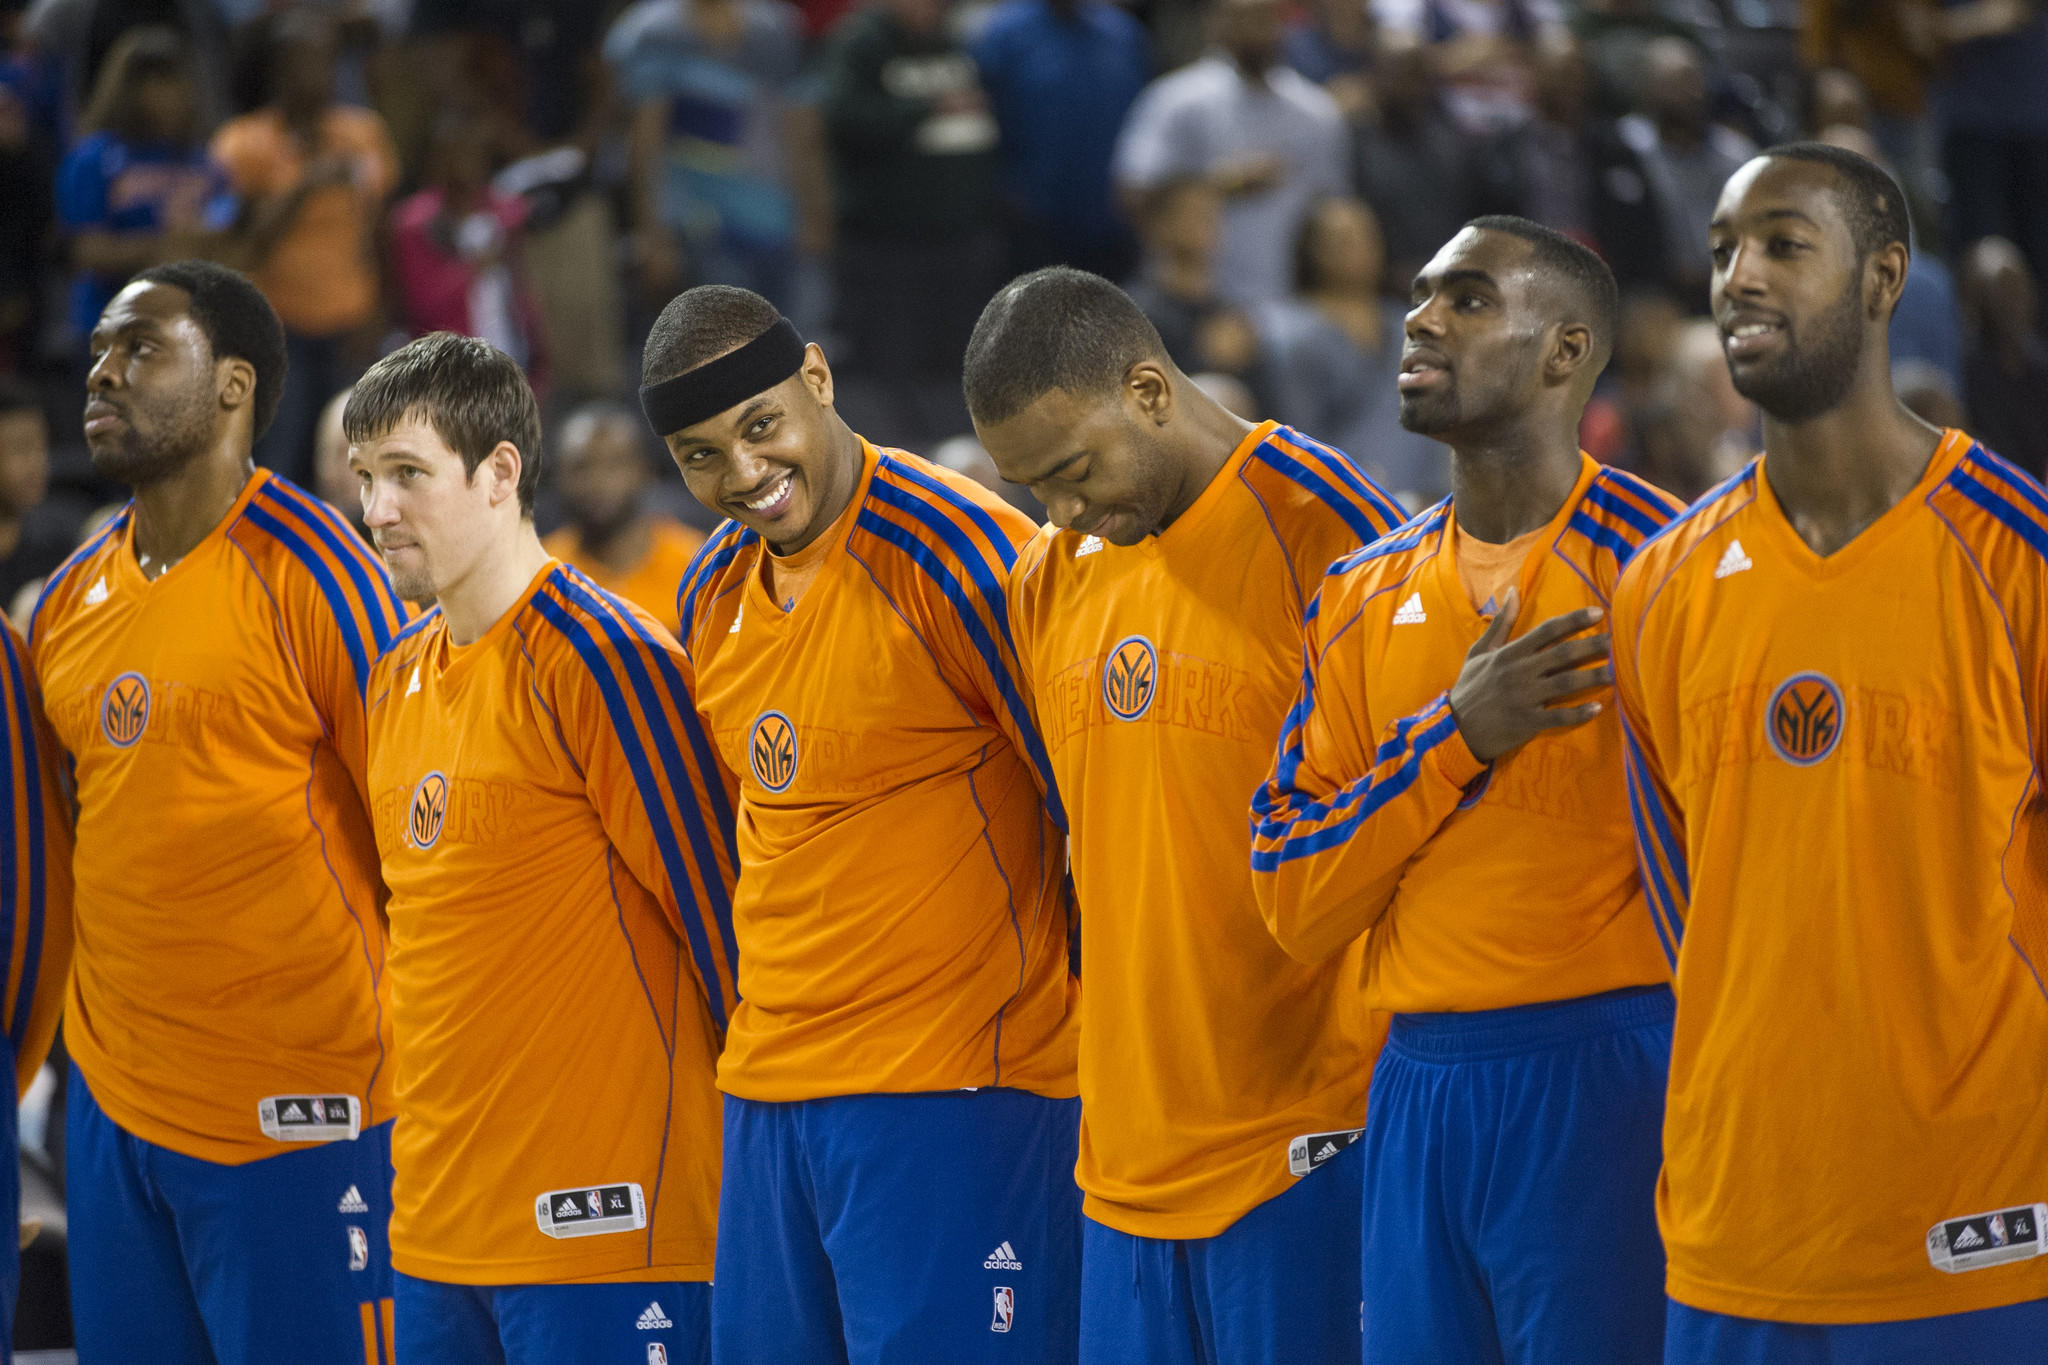 Carmelo Anthony, third from left, lines up with his New York Knicks teammates during the playing of the national anthem before the Baltimore Basketball Classic.